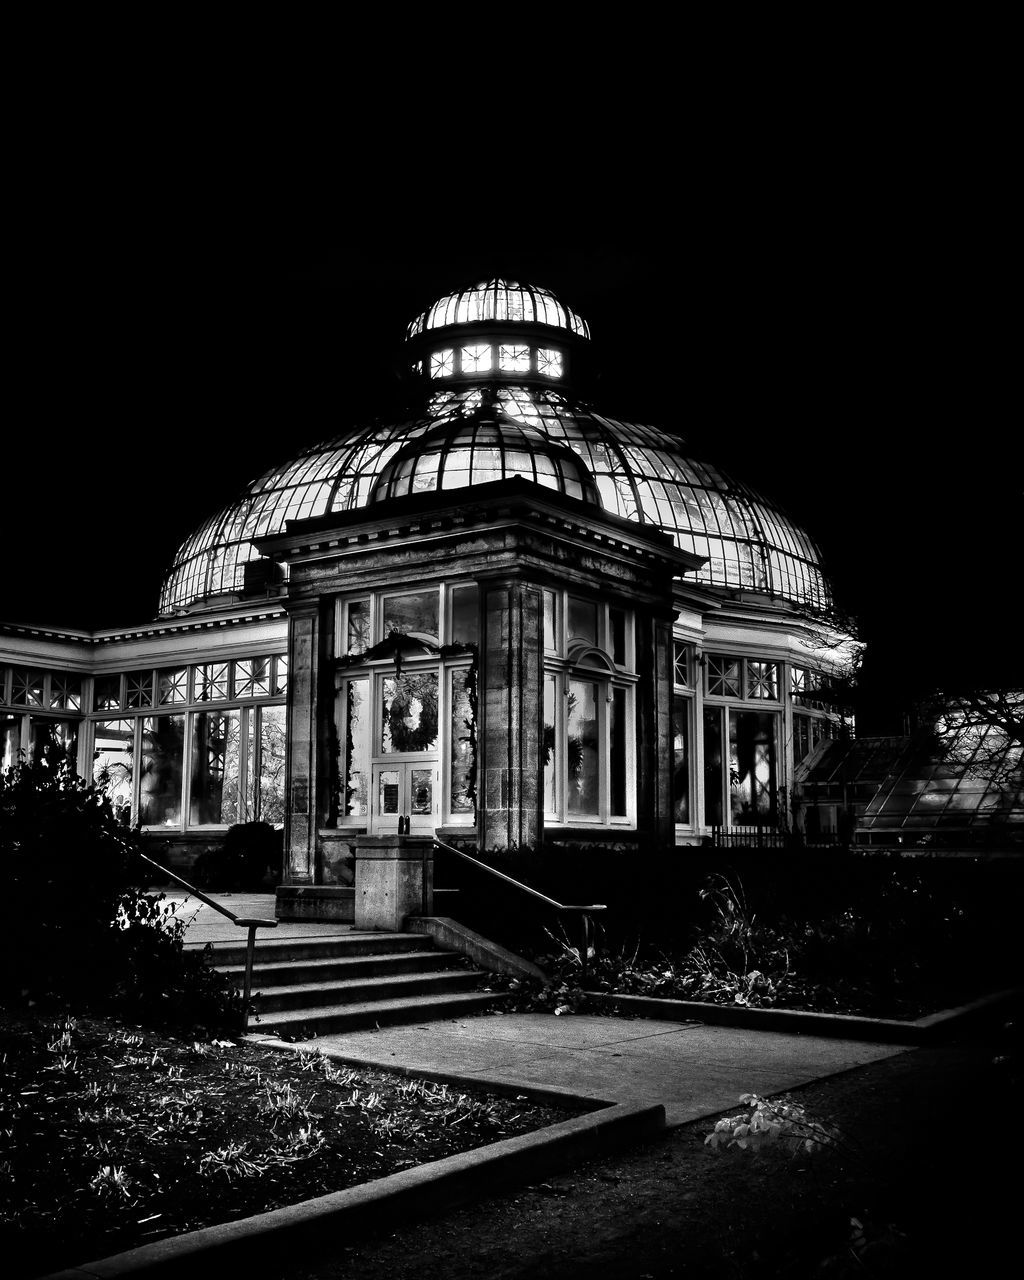 architecture, built structure, dome, building exterior, clear sky, night, travel destinations, outdoors, no people, sky